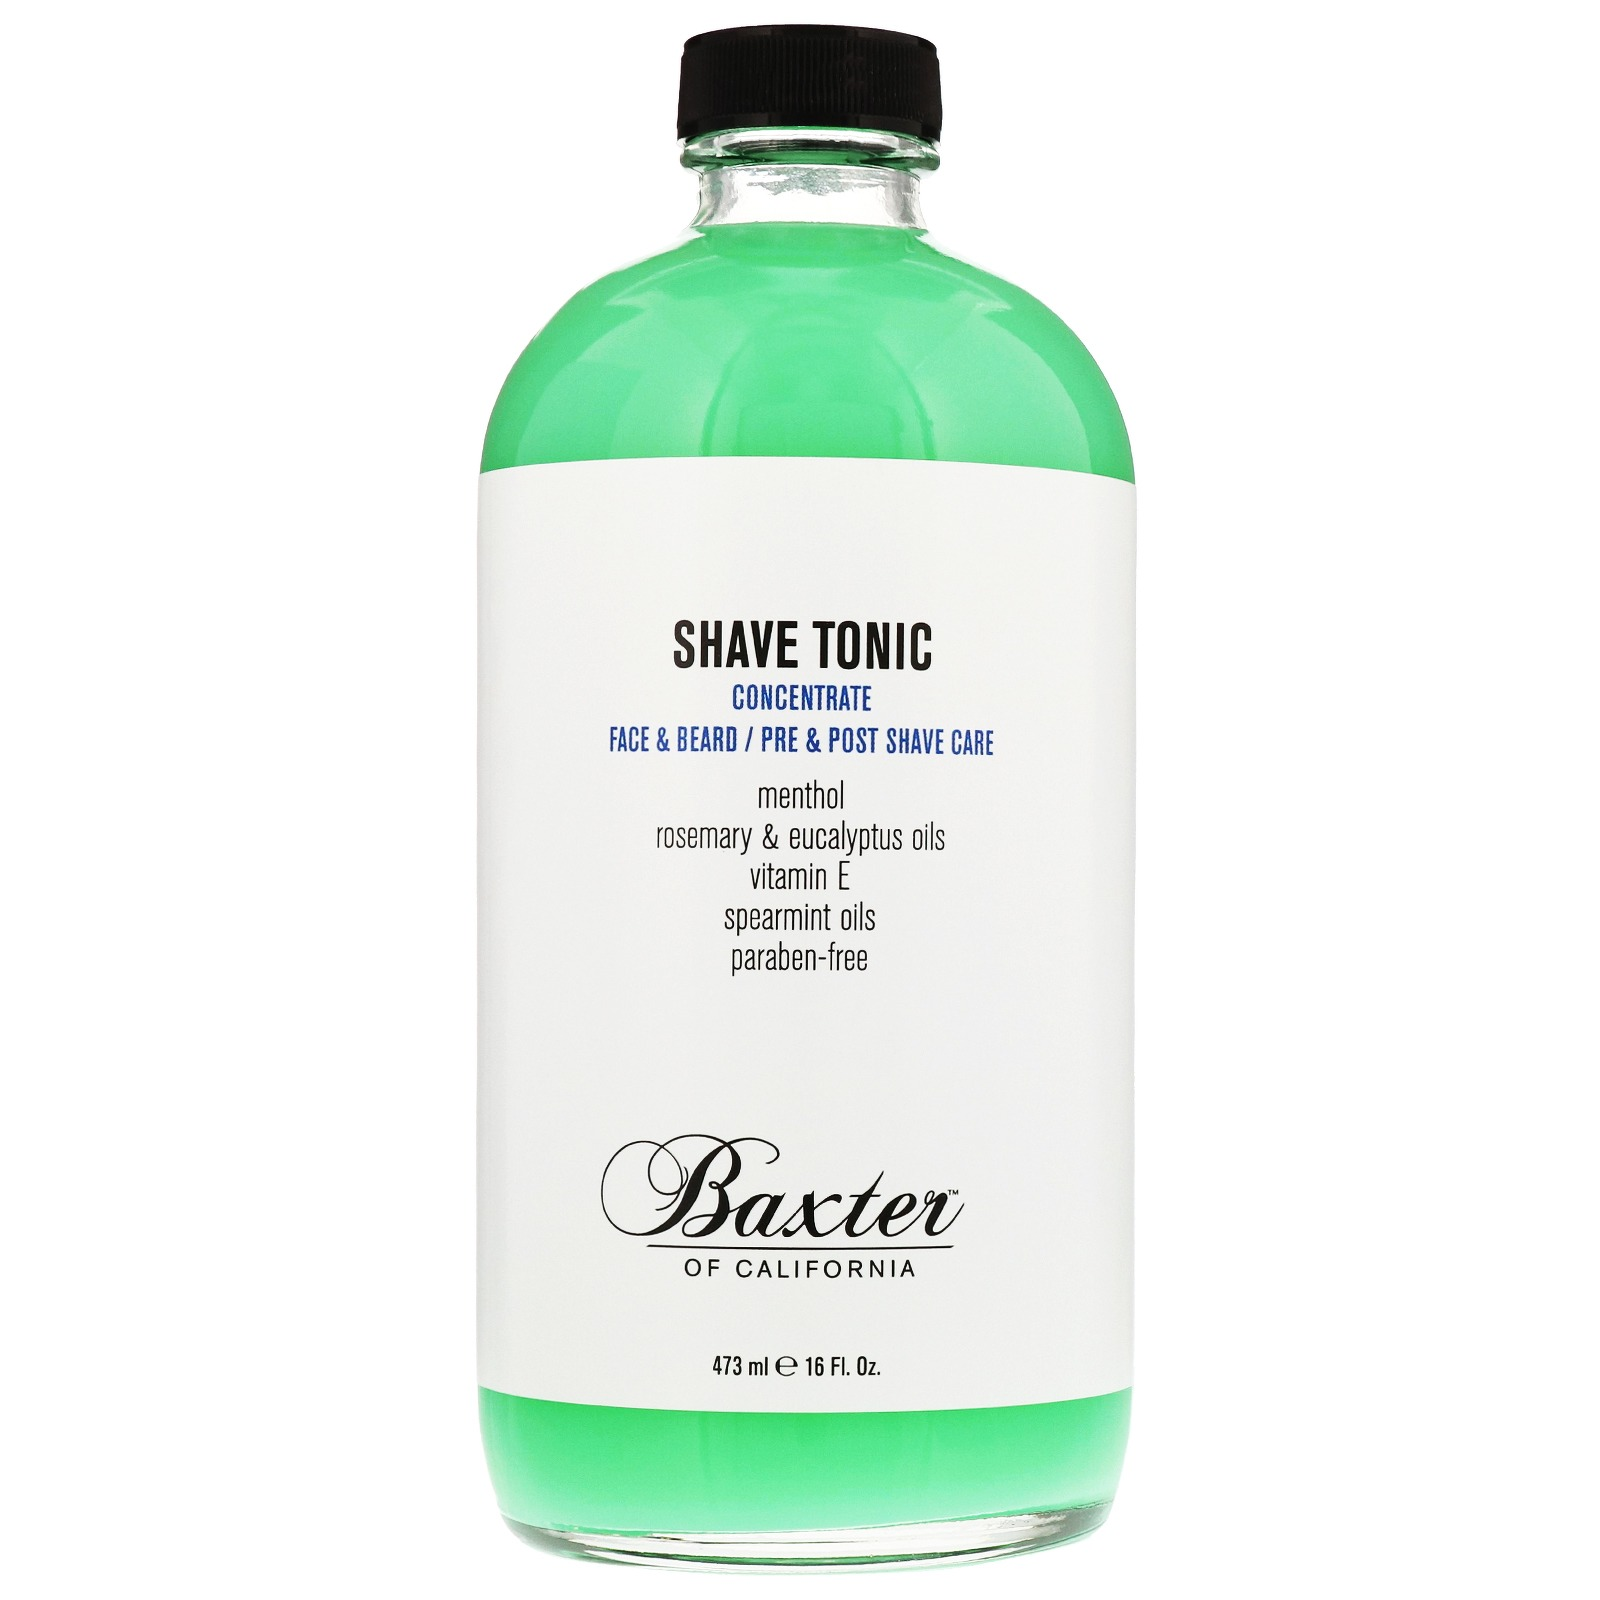 Baxter of California Shave Shave Tonic Concentrate 473ml